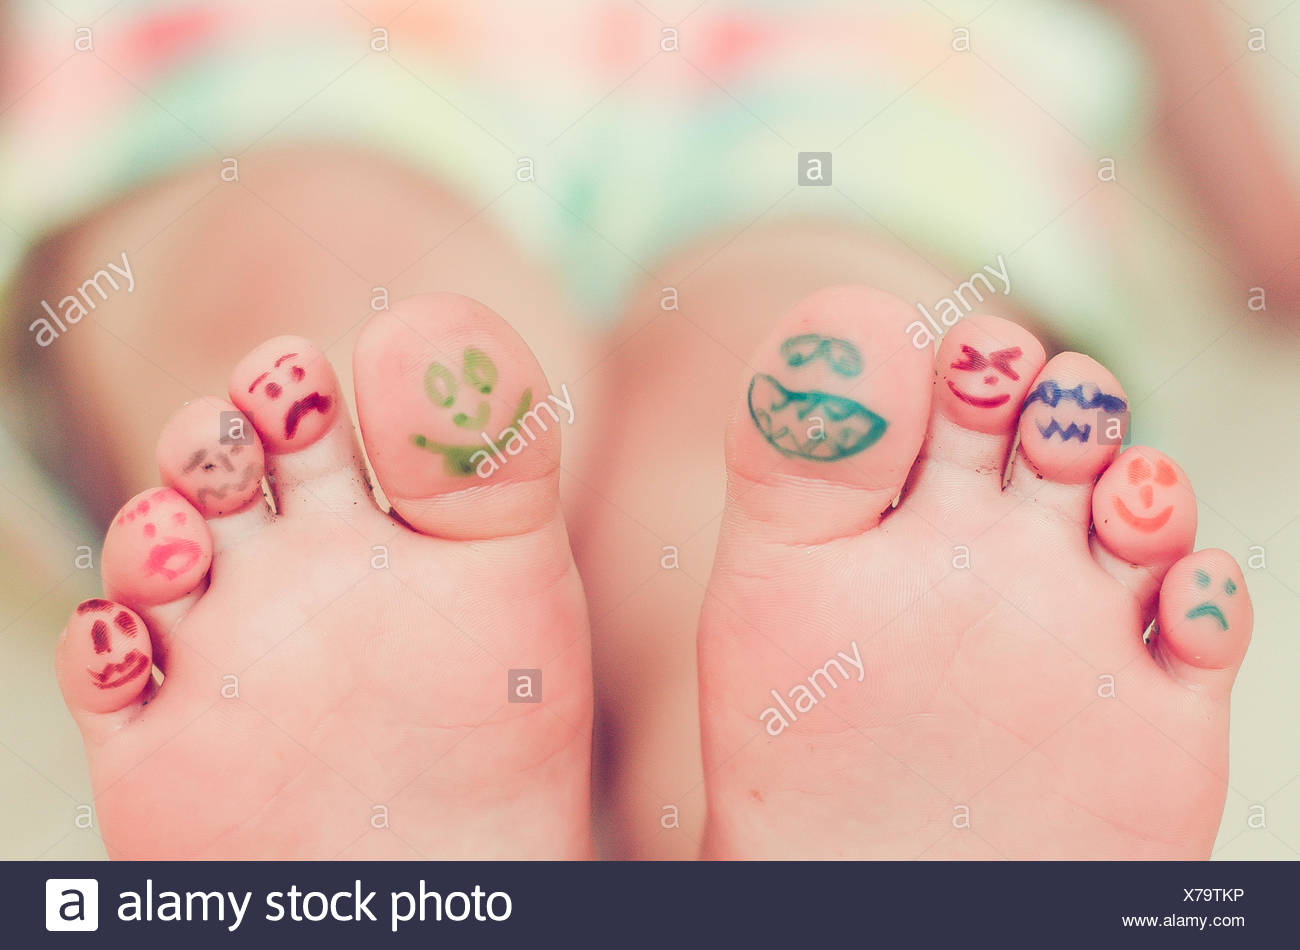 Girls feet with smiley face drawings - Stock Image